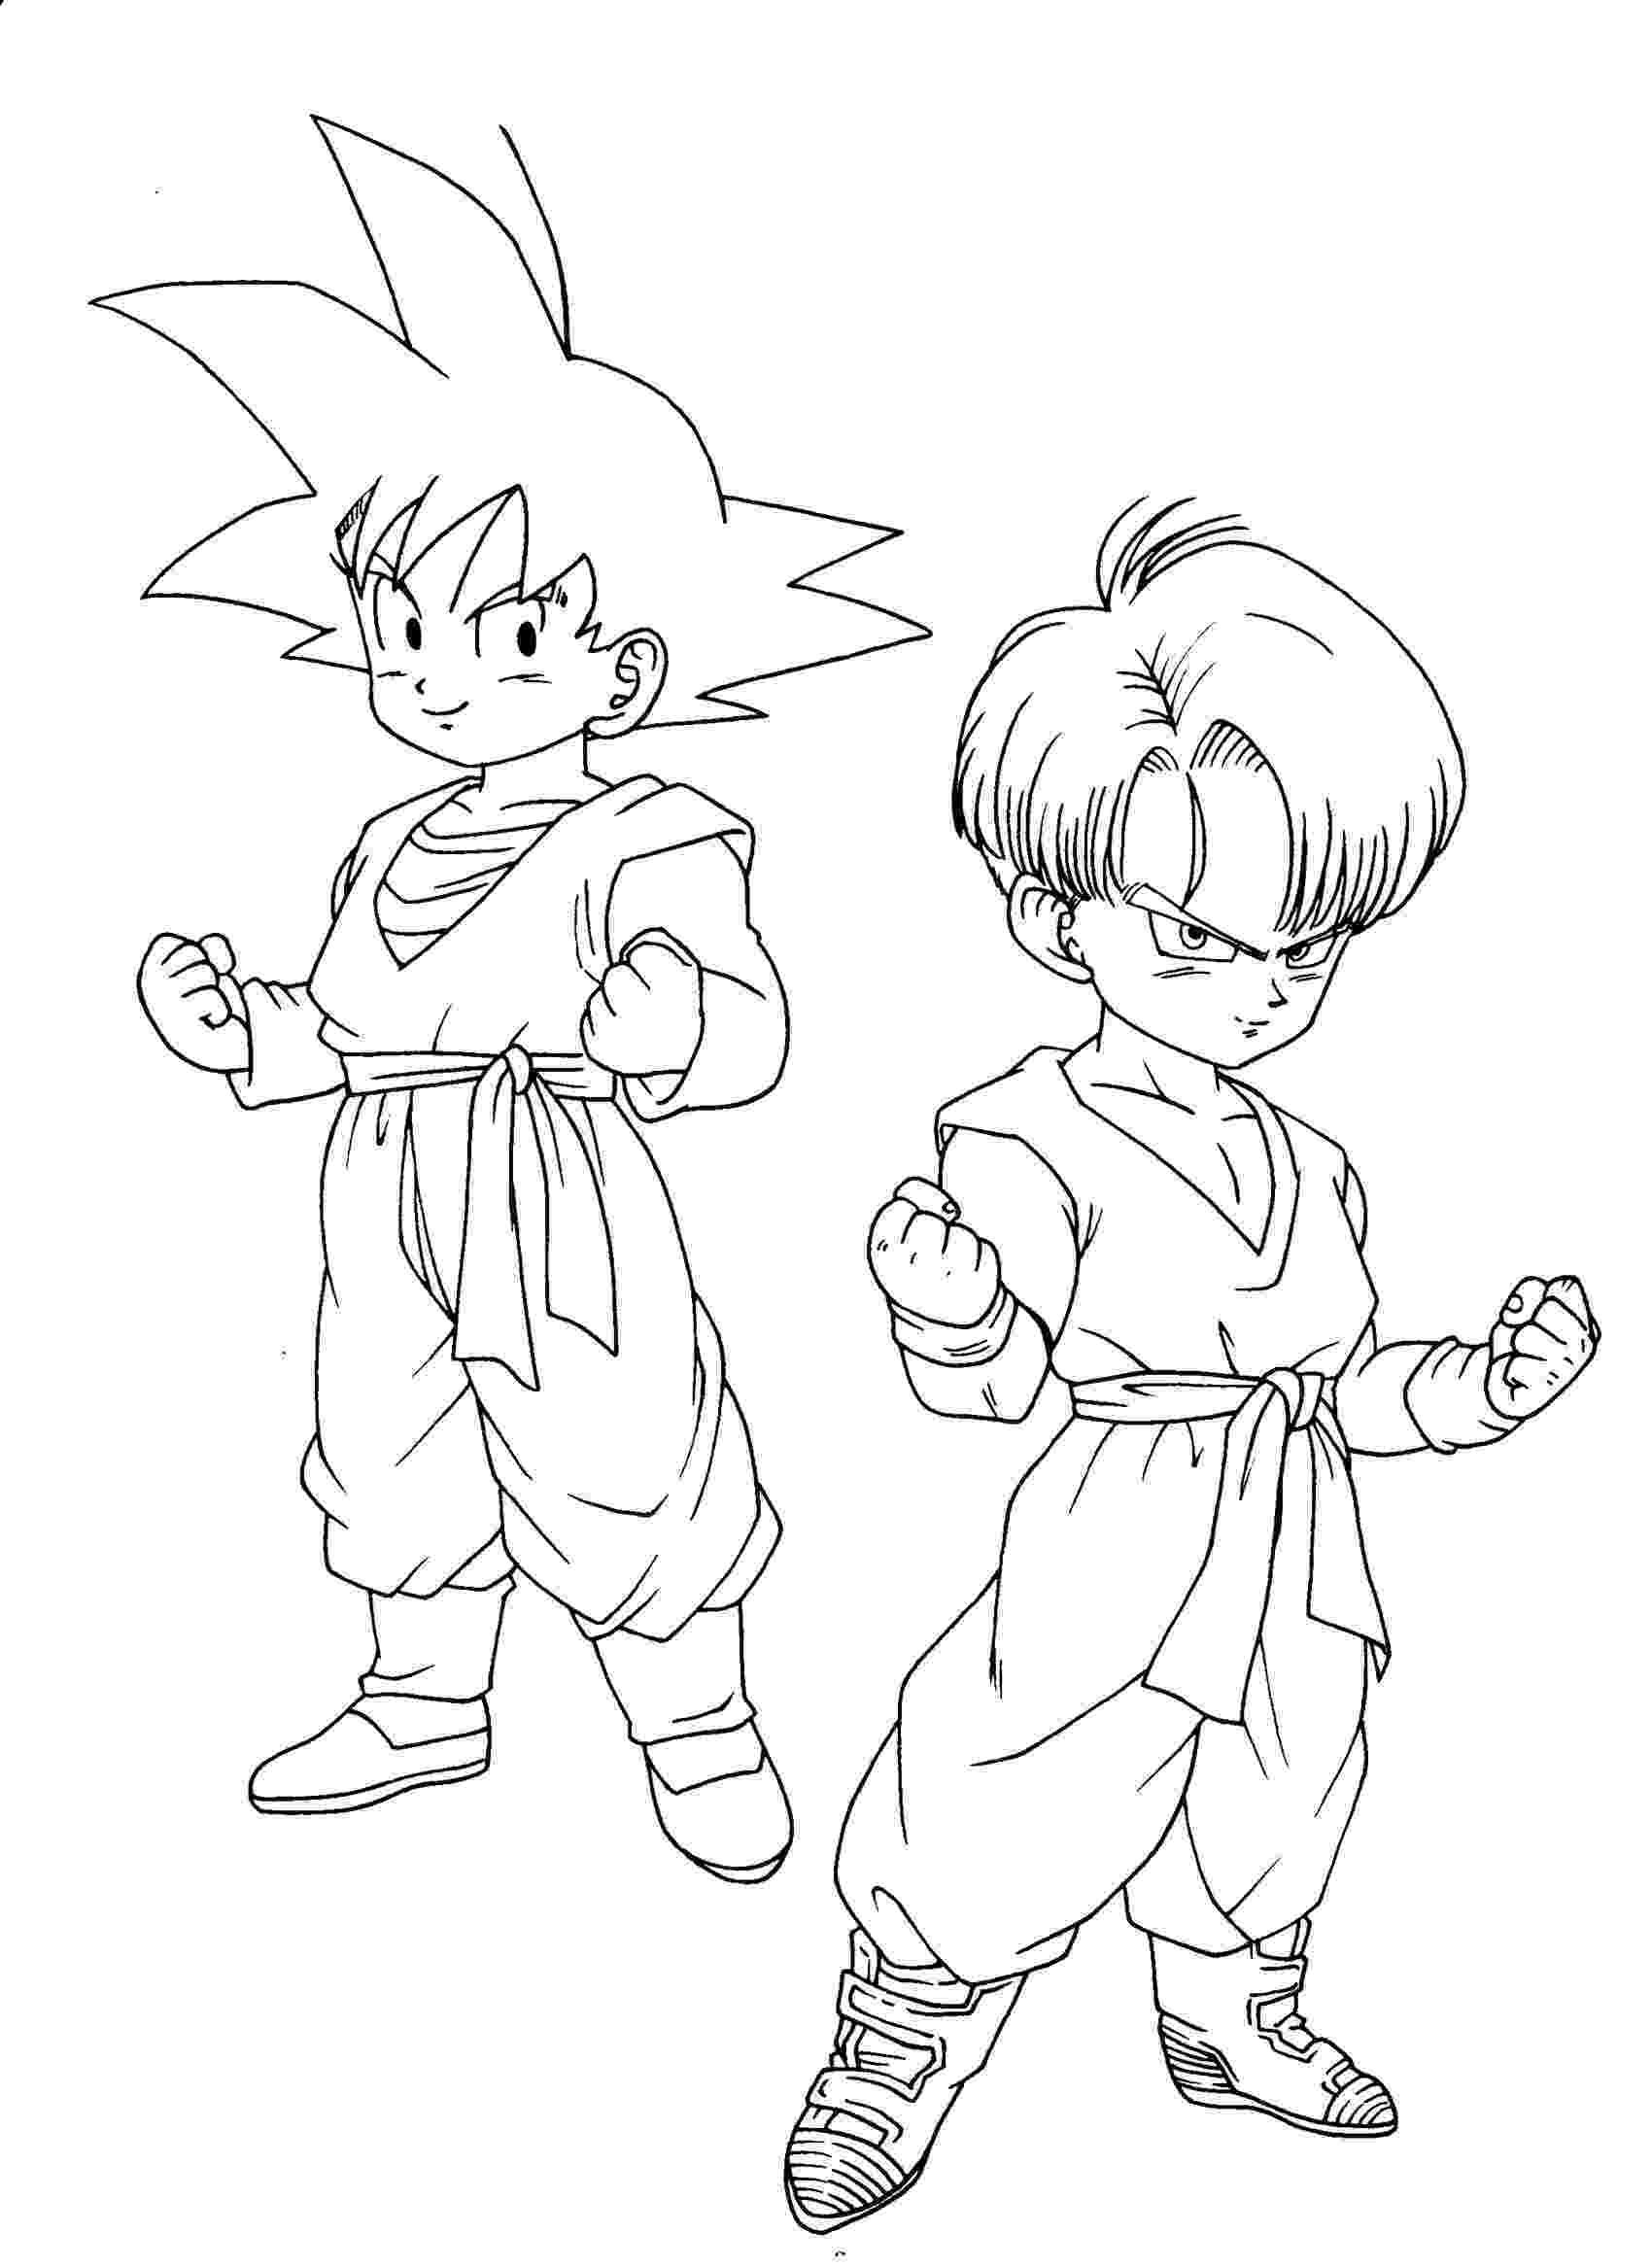 printable dragon ball z coloring pages free printable dragon ball z coloring pages for kids z dragon pages ball printable coloring